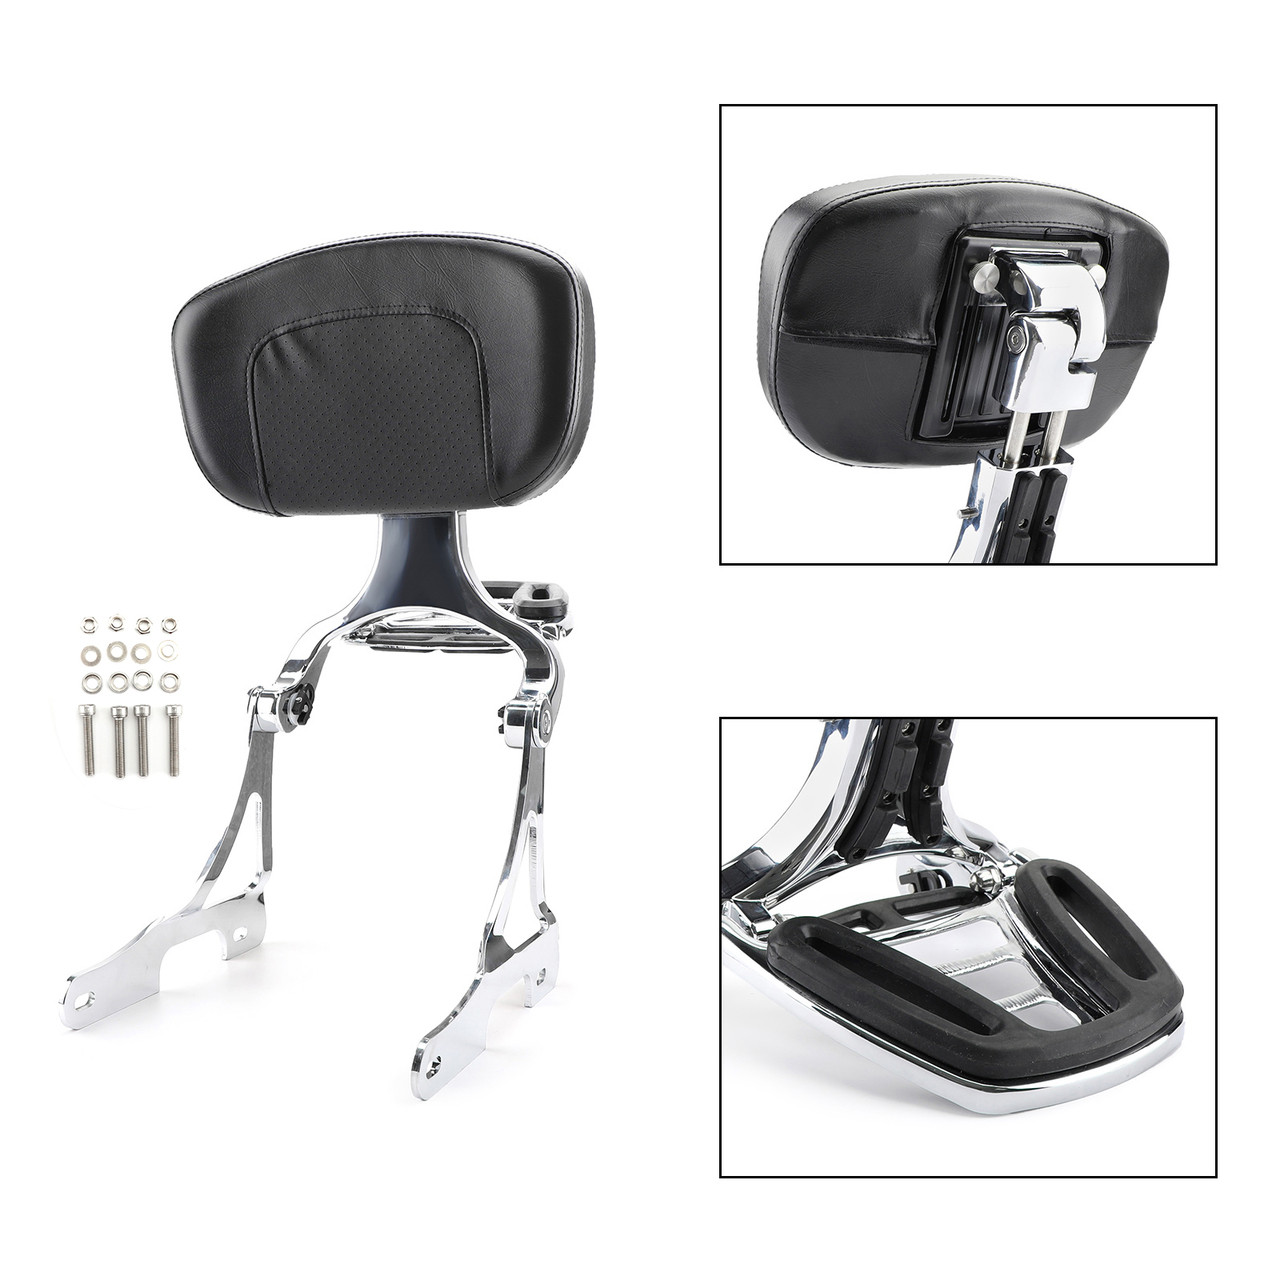 Sissy Bar Backrest w/ Luggage Rack For Harley Sportster 883 1200 48 06-18 Chrome